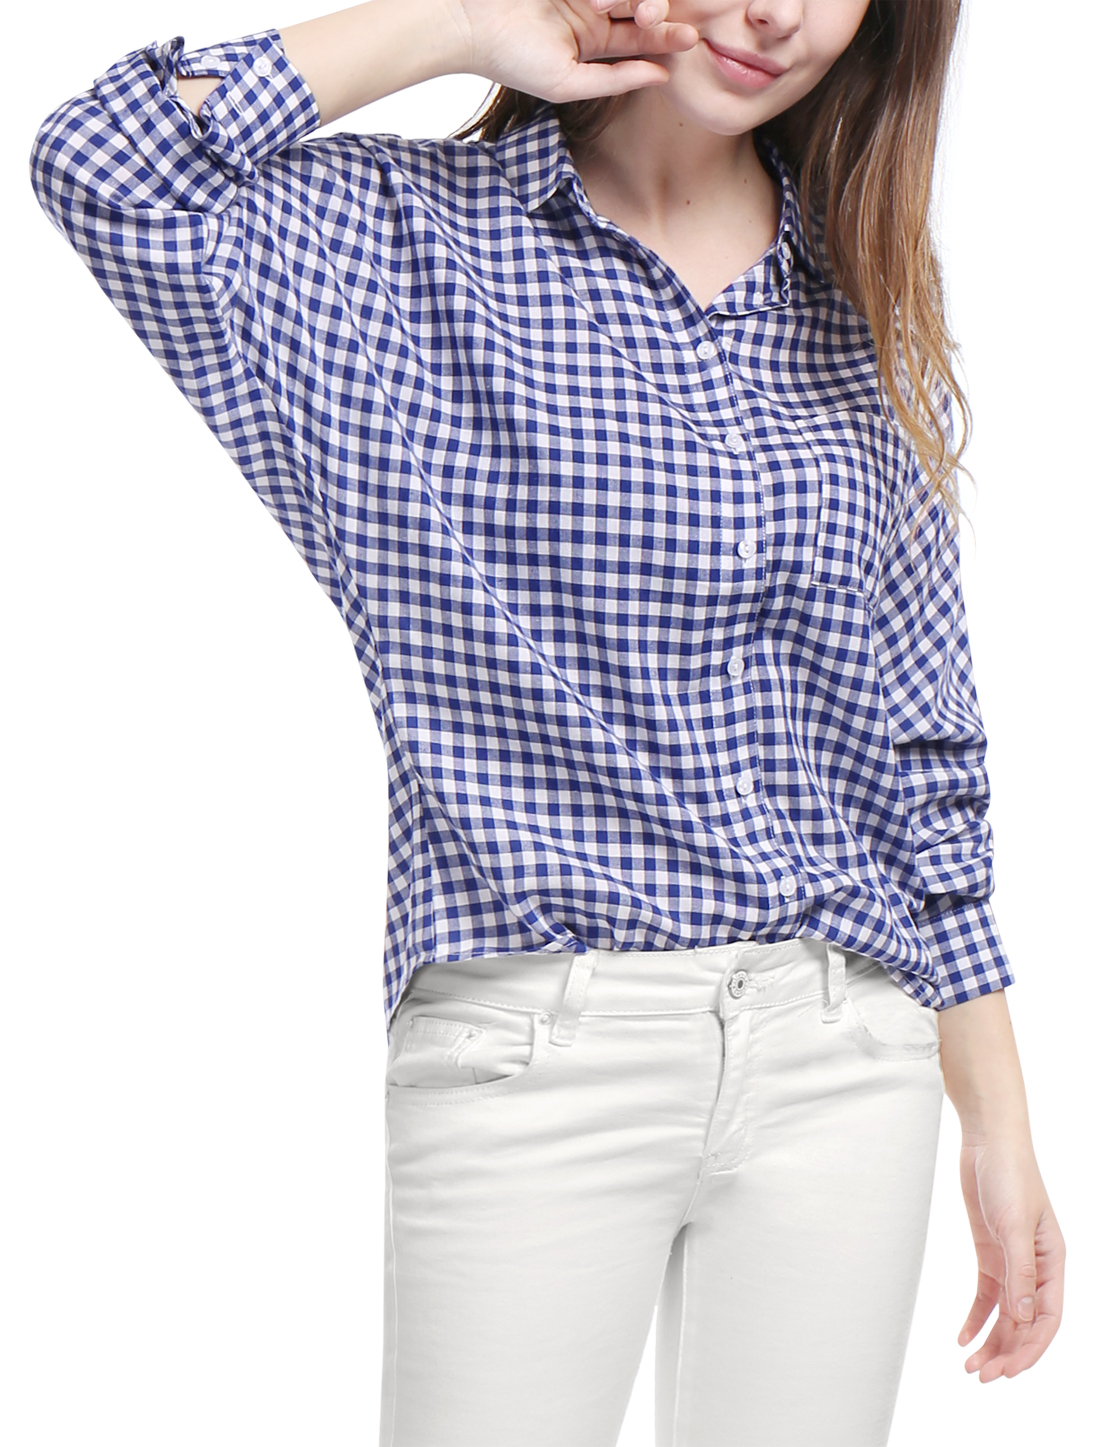 Women Single Breasted Batwing Sleeves Gingham Shirt Blue XS